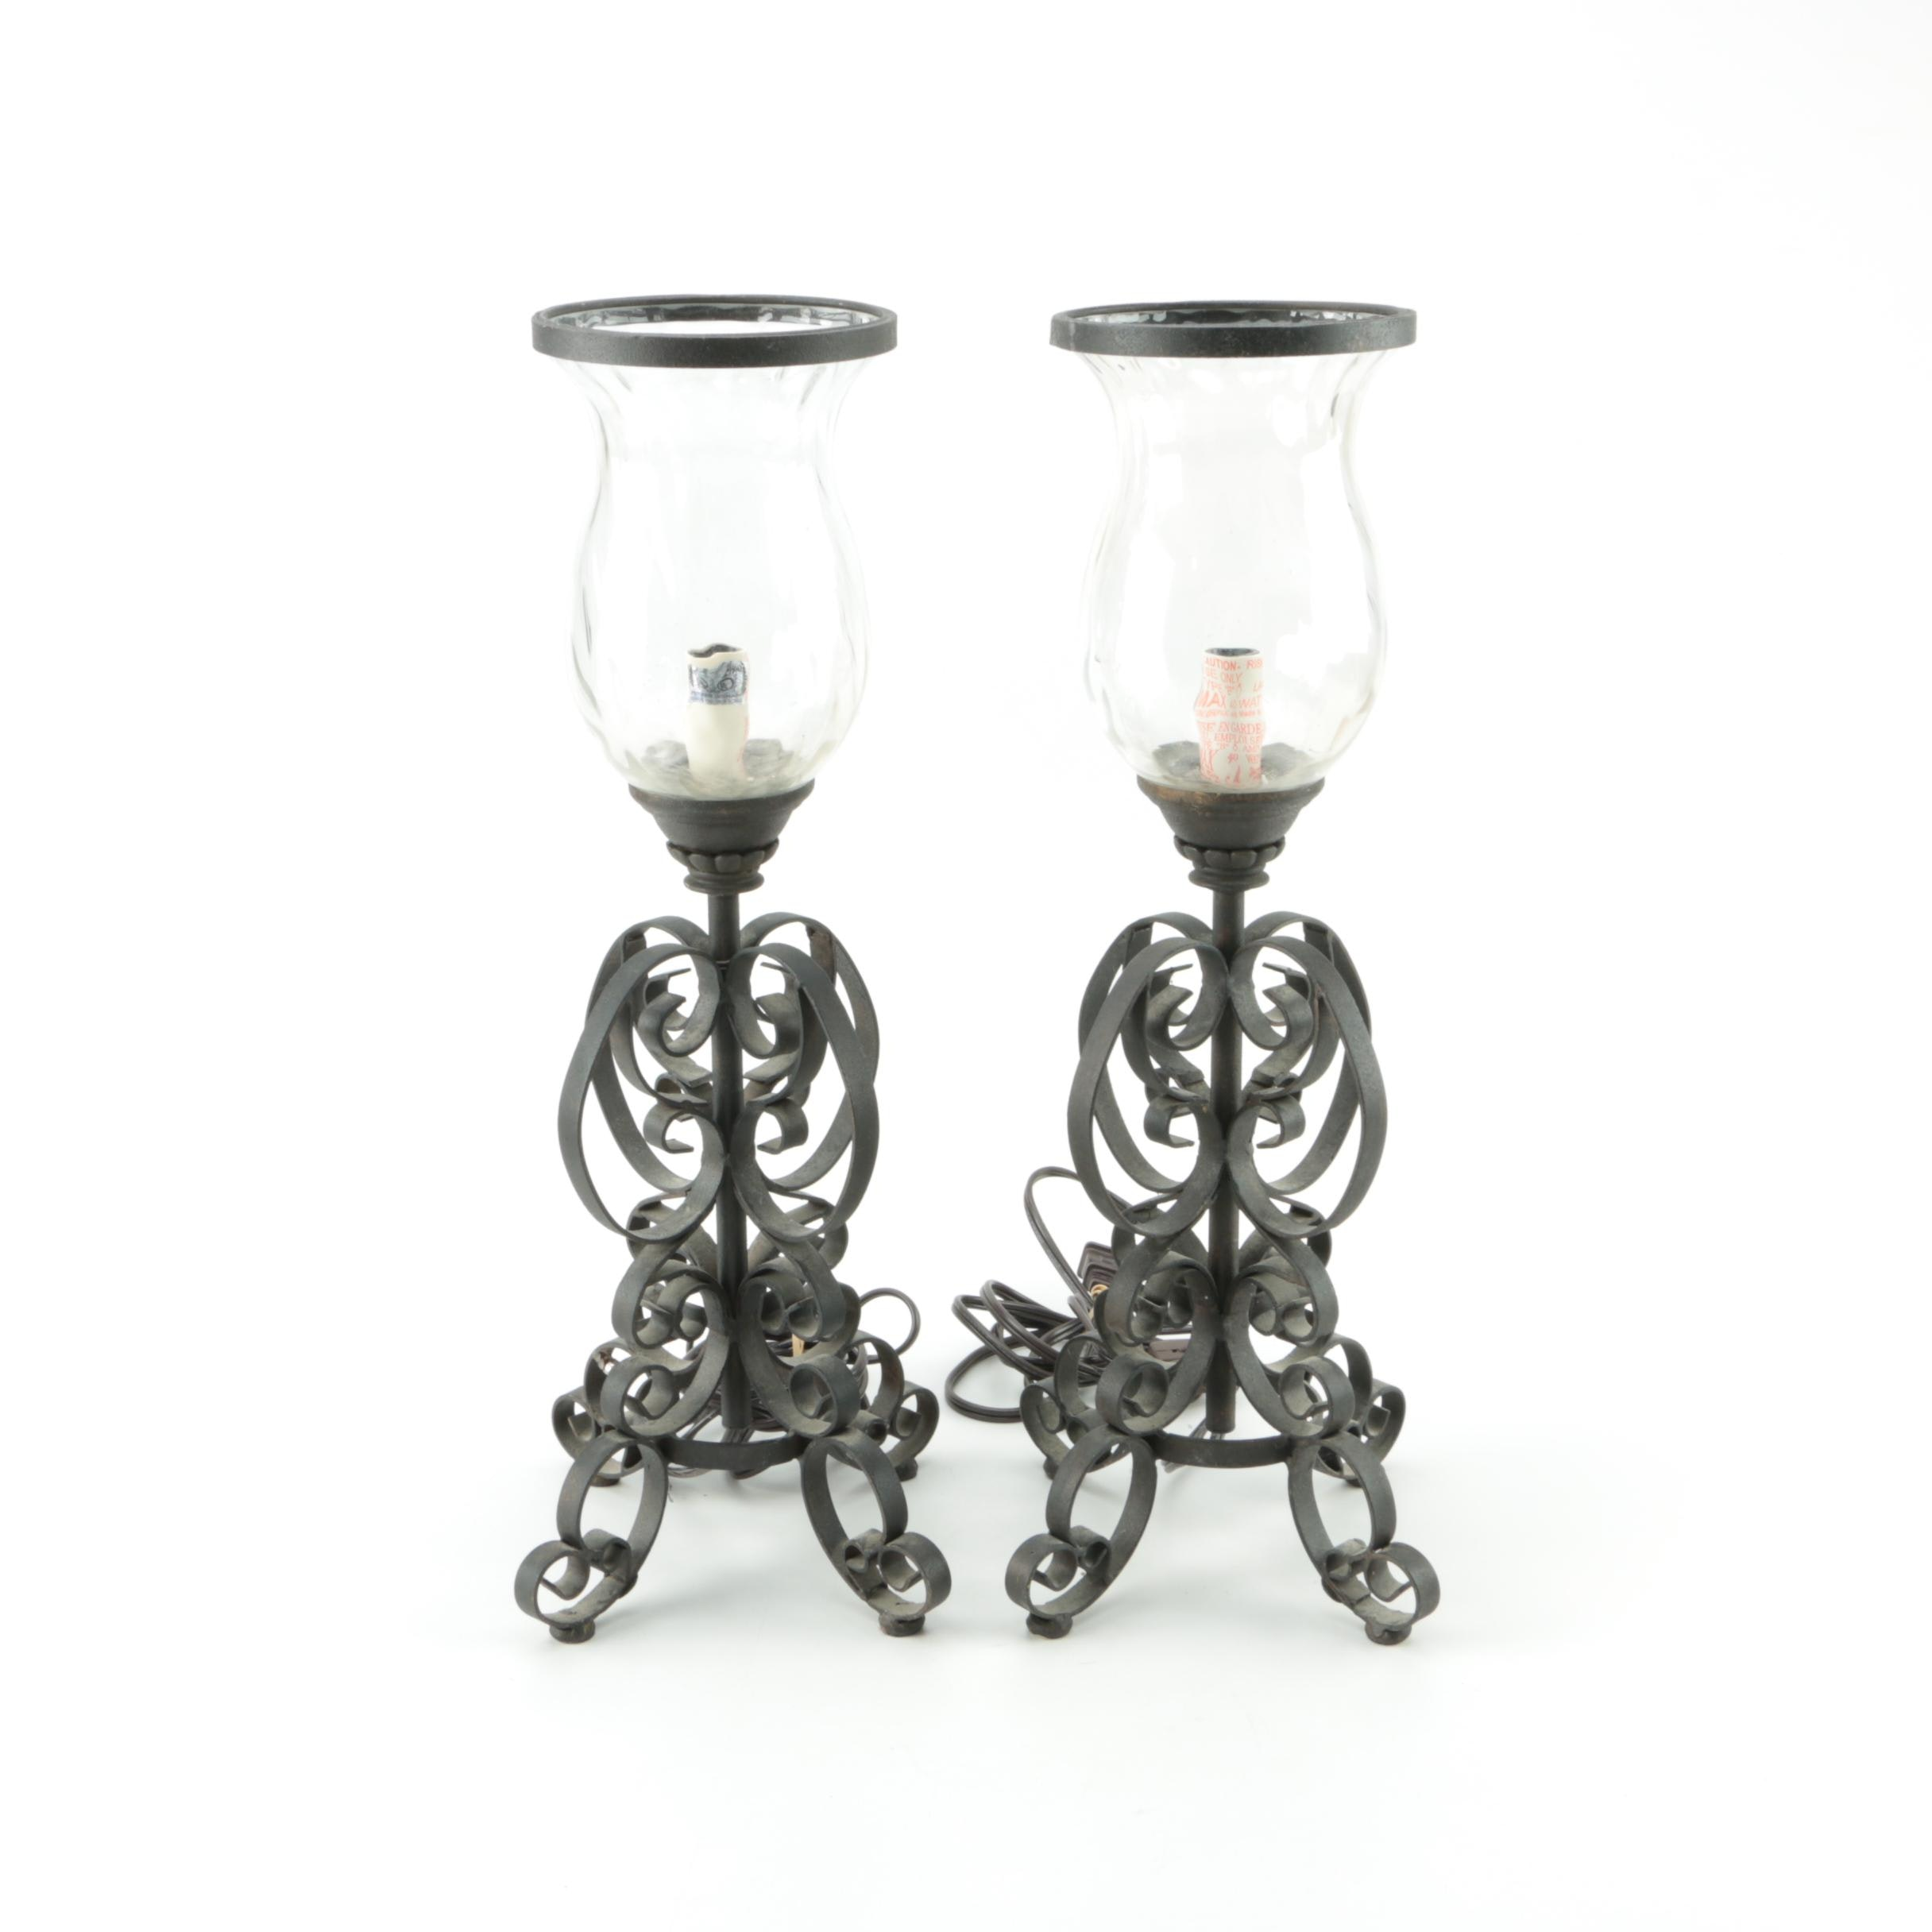 Cast Iron Desk Lamps with Glass Shades